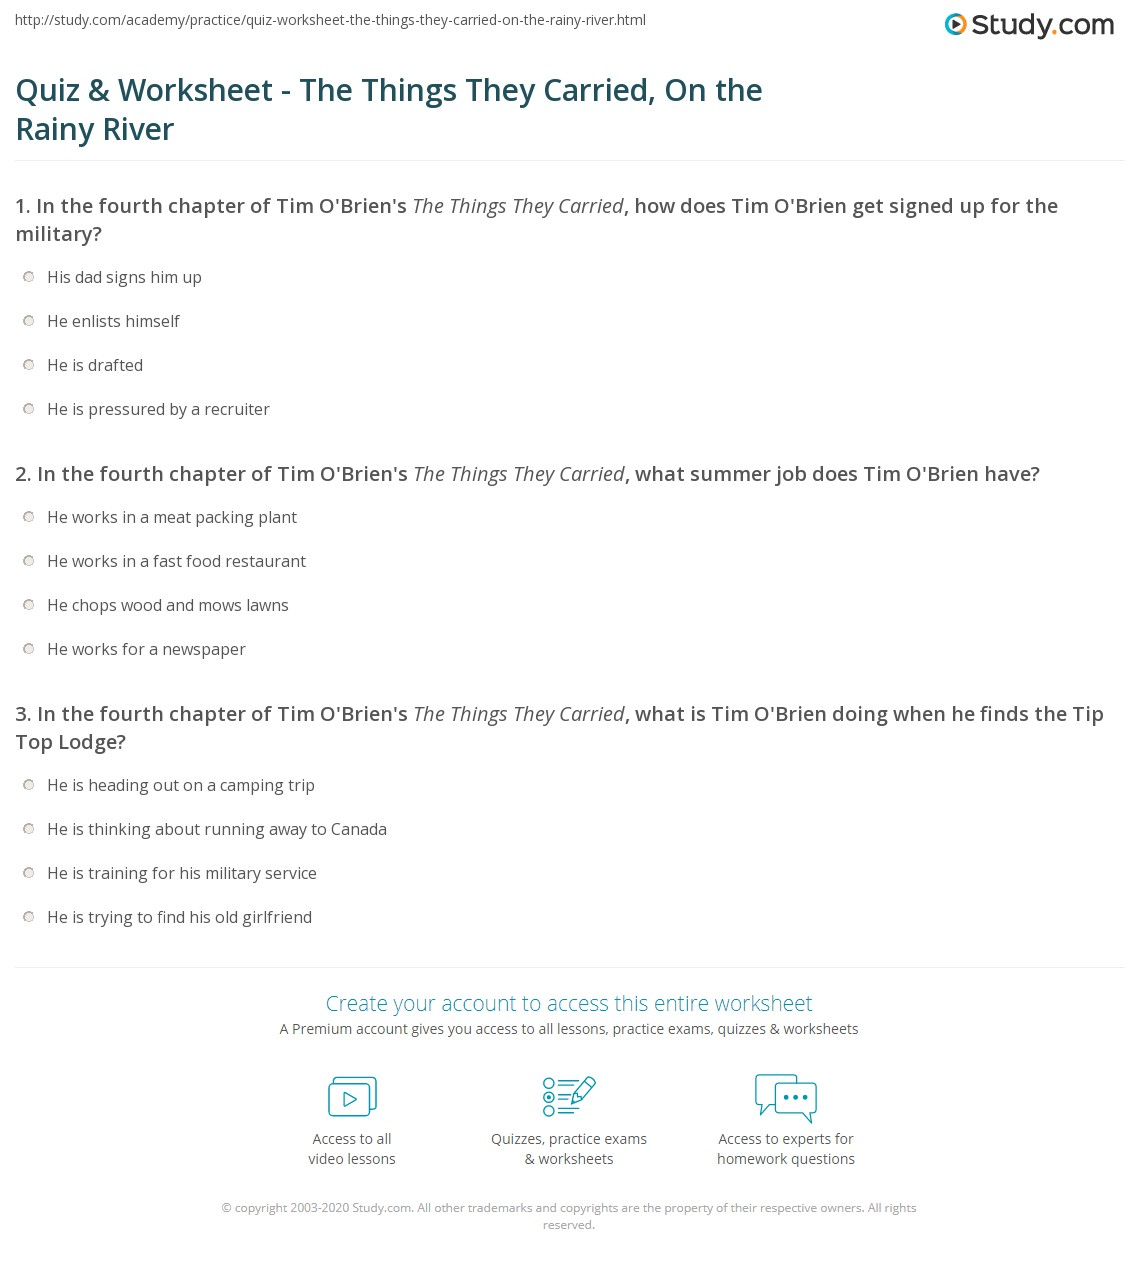 quiz worksheet the things they carried on the rainy river print the things they carried chapter 4 on the rainy river summary worksheet